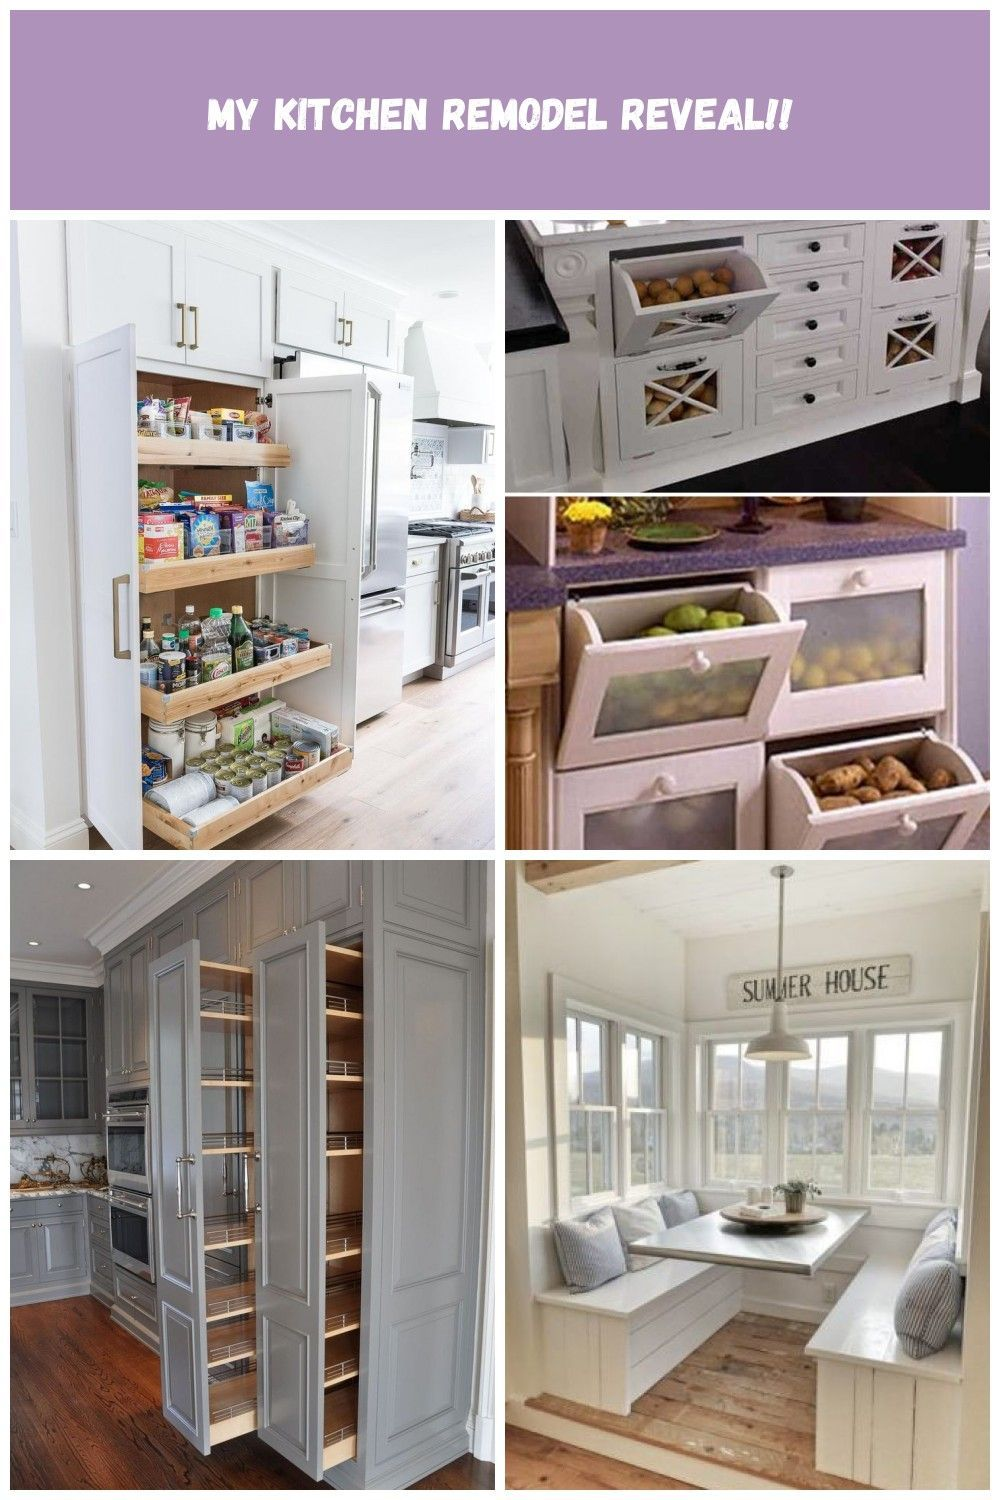 A large pantry was a must-have for my kitchen remodel! LOVE my new tall & deep pantry with pull out shelves - so much storage space! #pantry #kitchenreno #kitchendesign #kitchenideas #cabinets Kitchen ideas My Kitchen Remodel Reveal!! #largepantryideas A large pantry was a must-have for my kitchen remodel! LOVE my new tall & deep pantry with pull out shelves - so much storage space! #pantry #kitchenreno #kitchendesign #kitchenideas #cabinets Kitchen ideas My Kitchen Remodel Reveal!! #largepantryideas